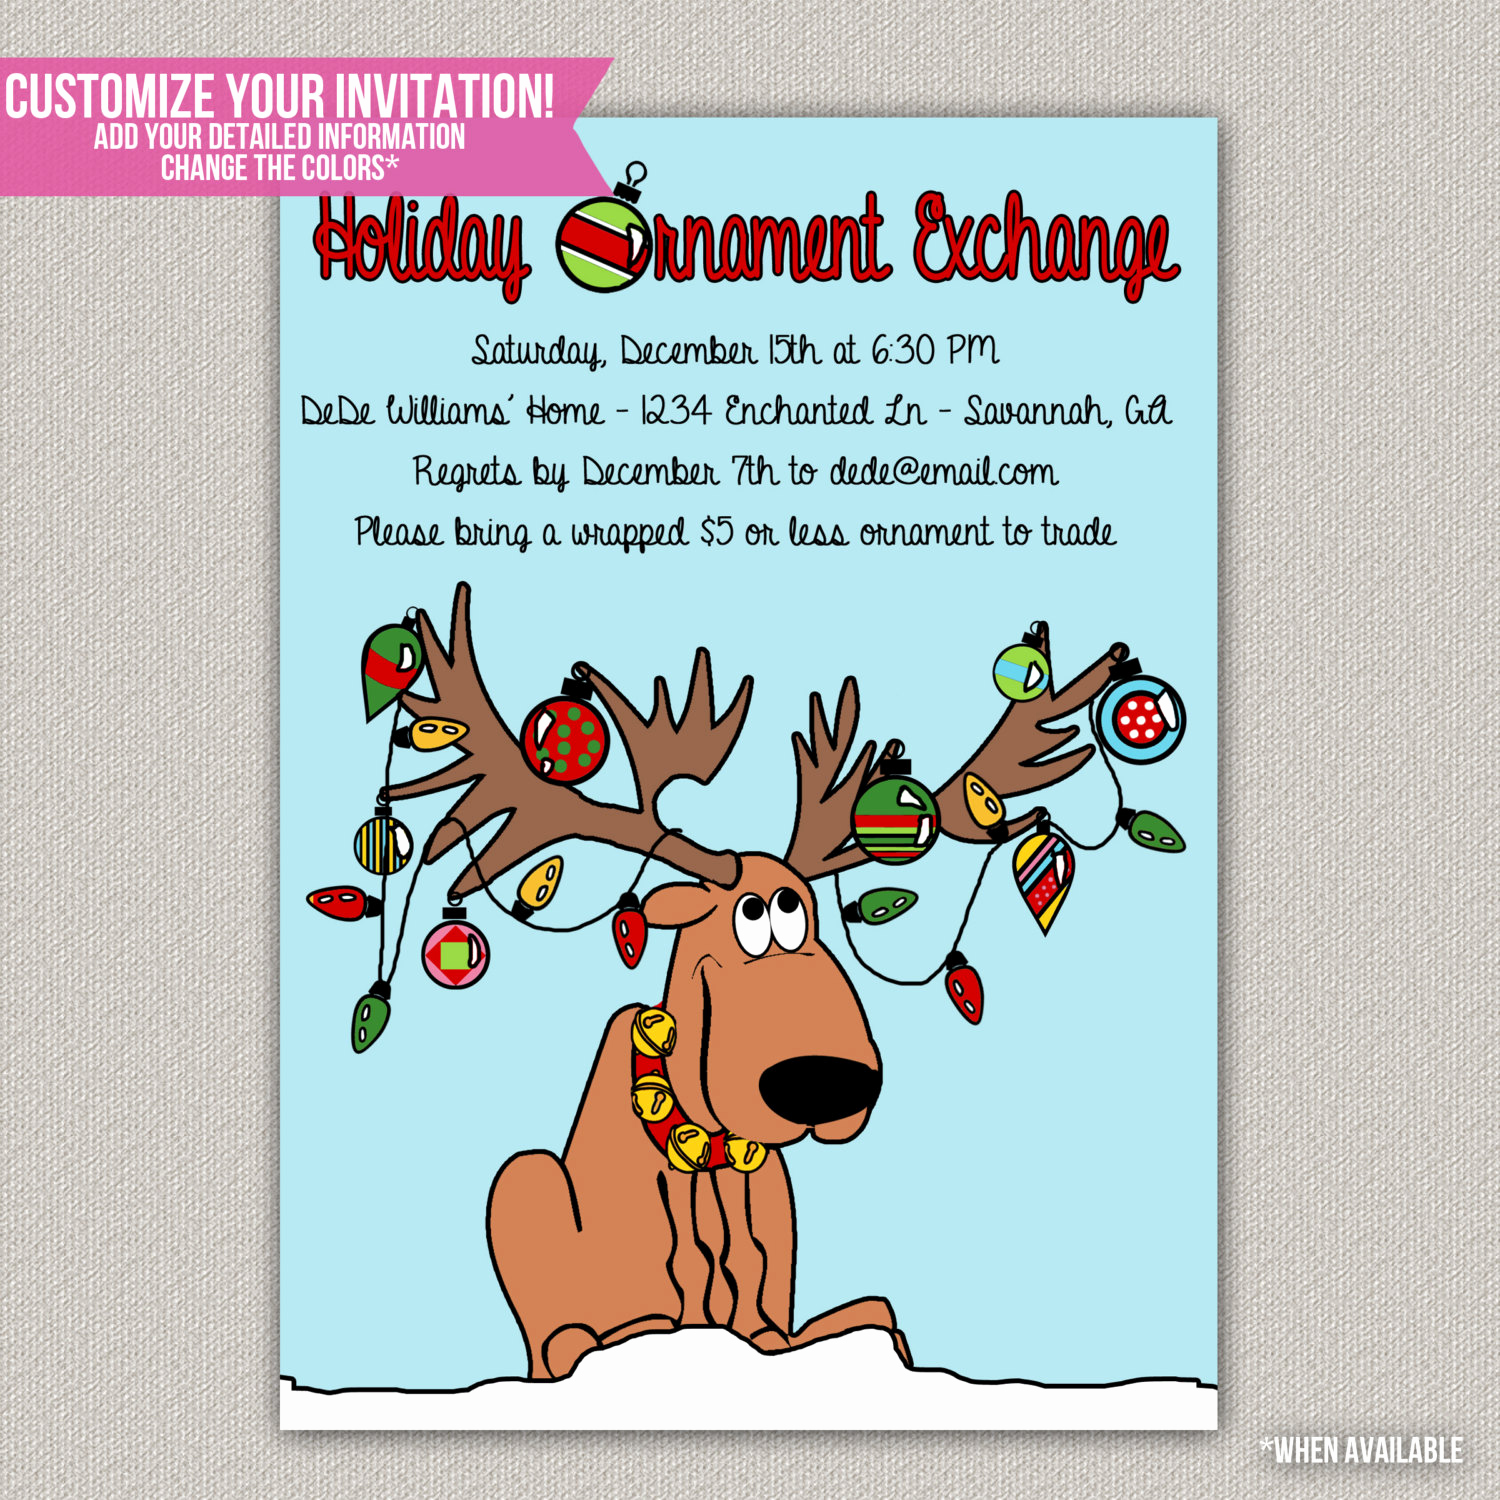 Swap Party Invitation Wording Lovely Holiday ornament Exchange Party Christmas by